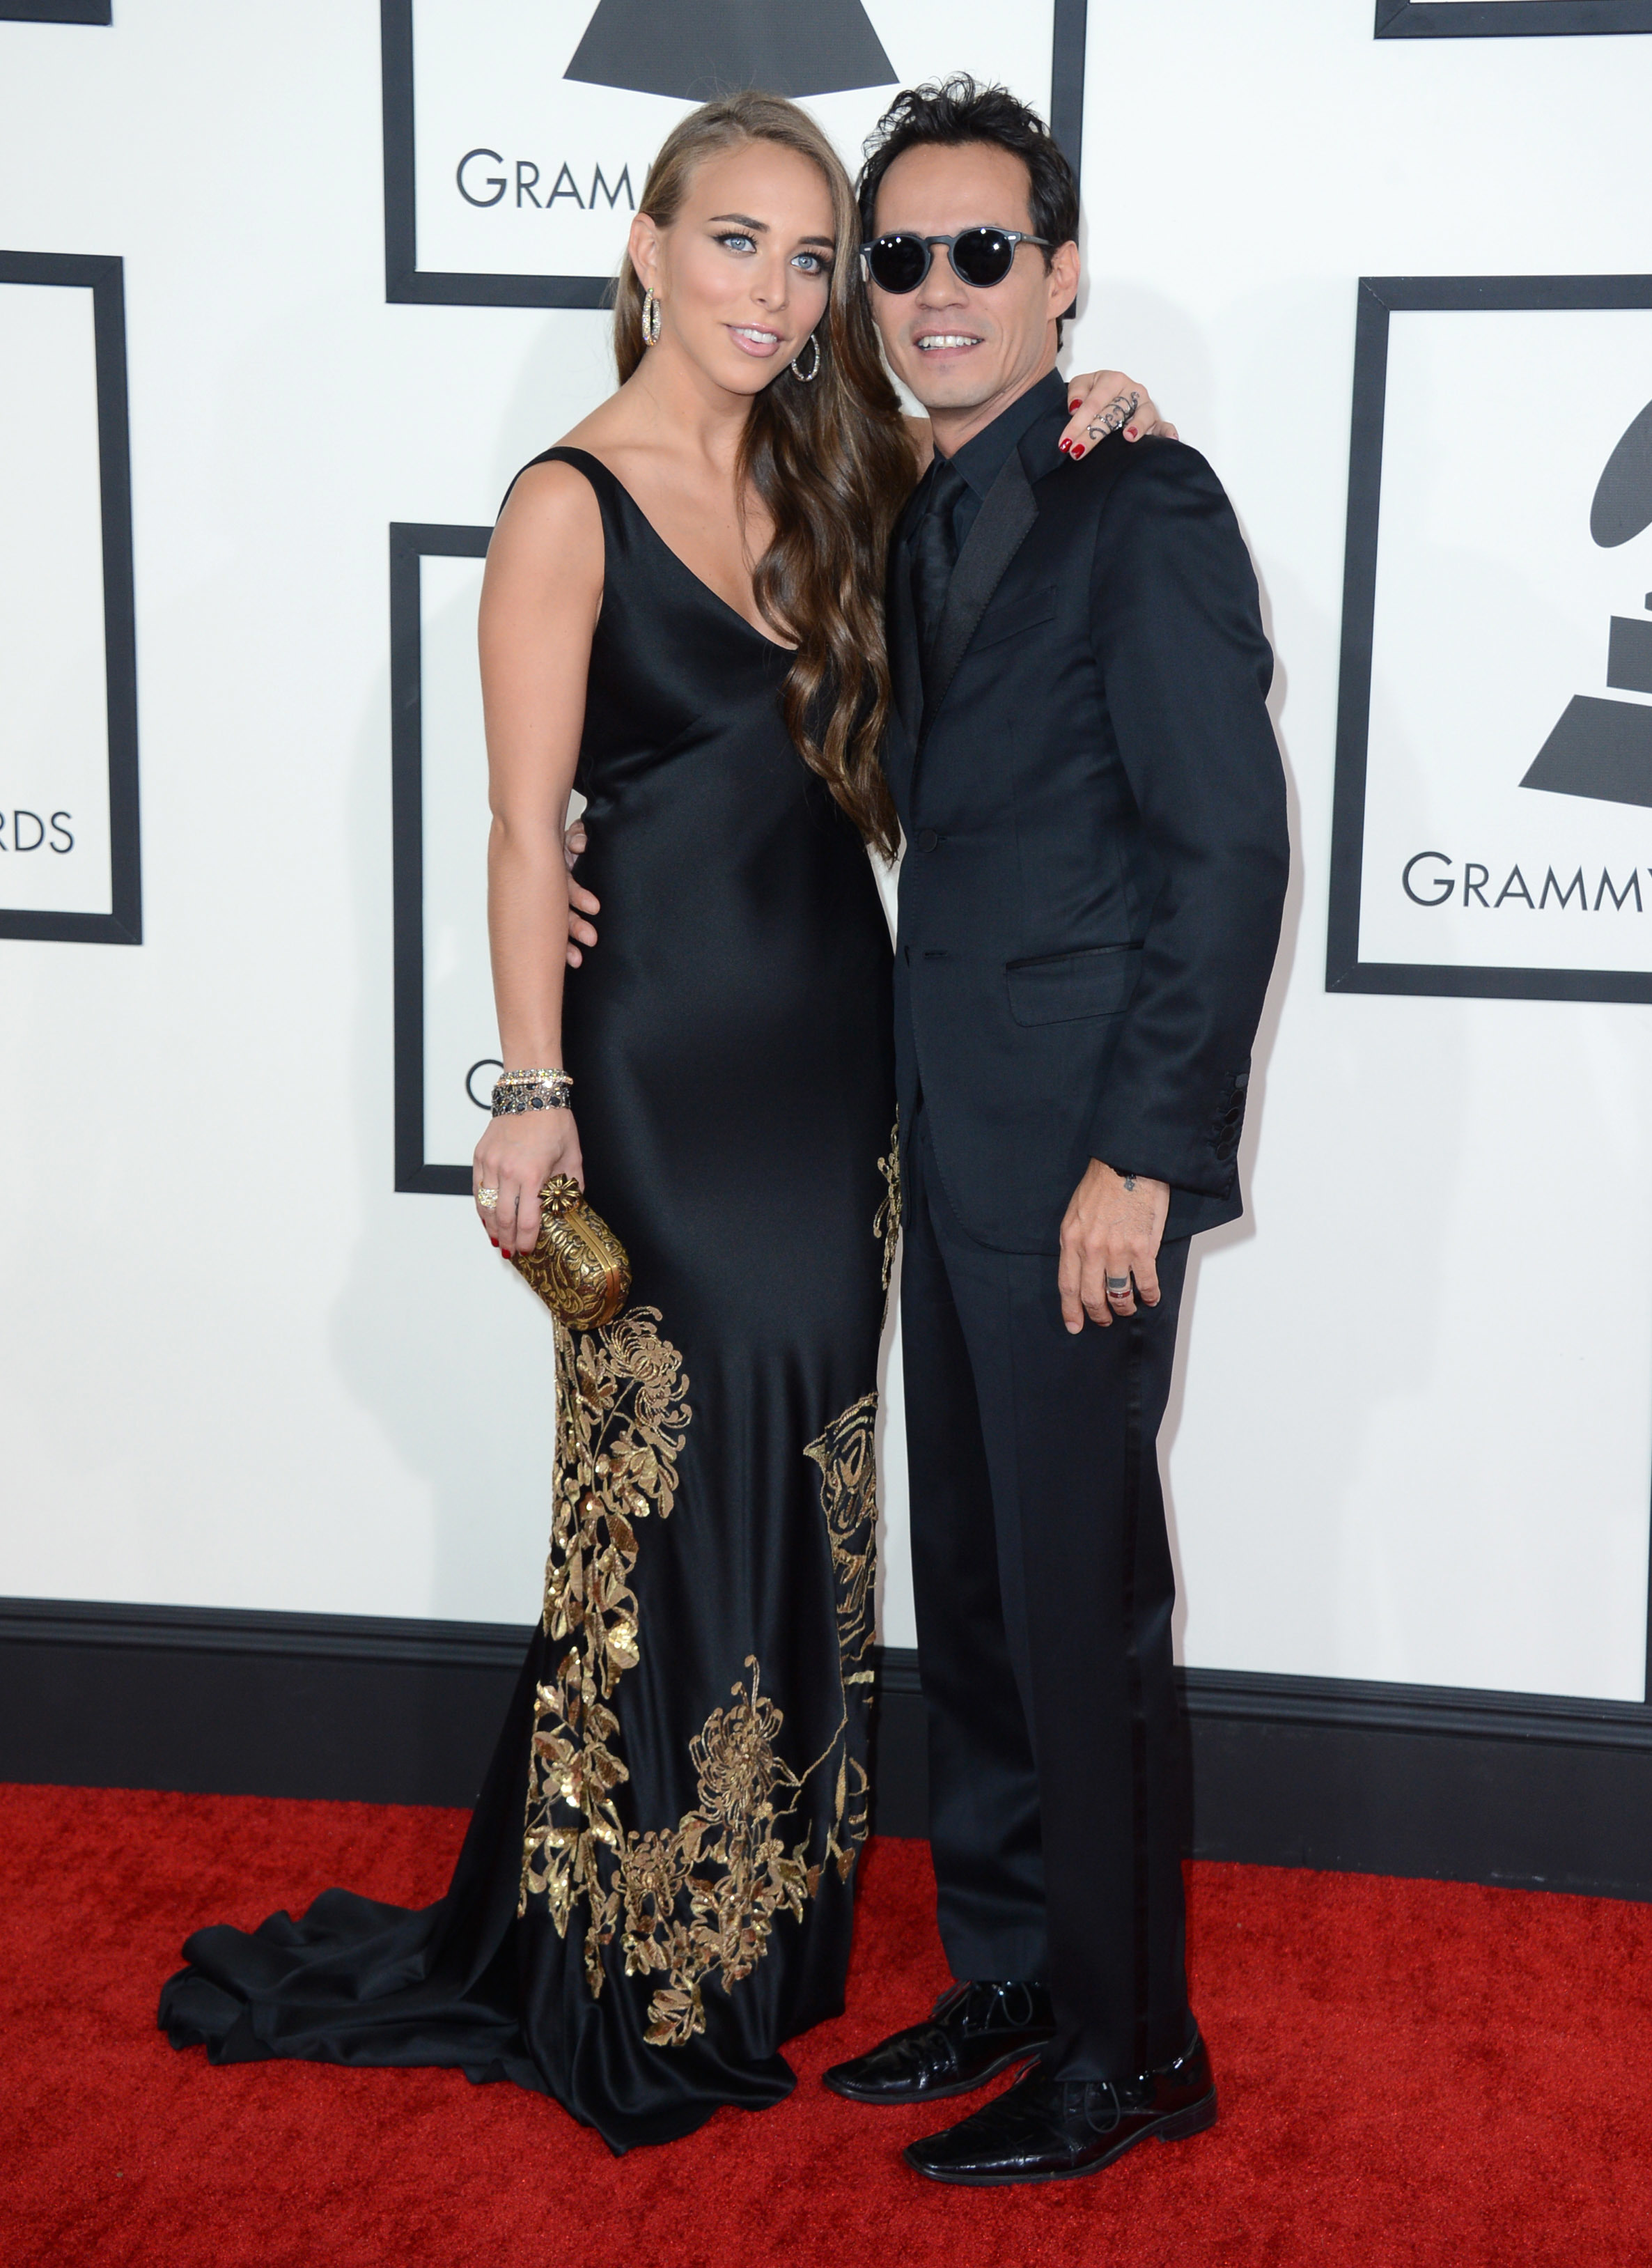 Marc Anthony Chloe Green Grammys 2014